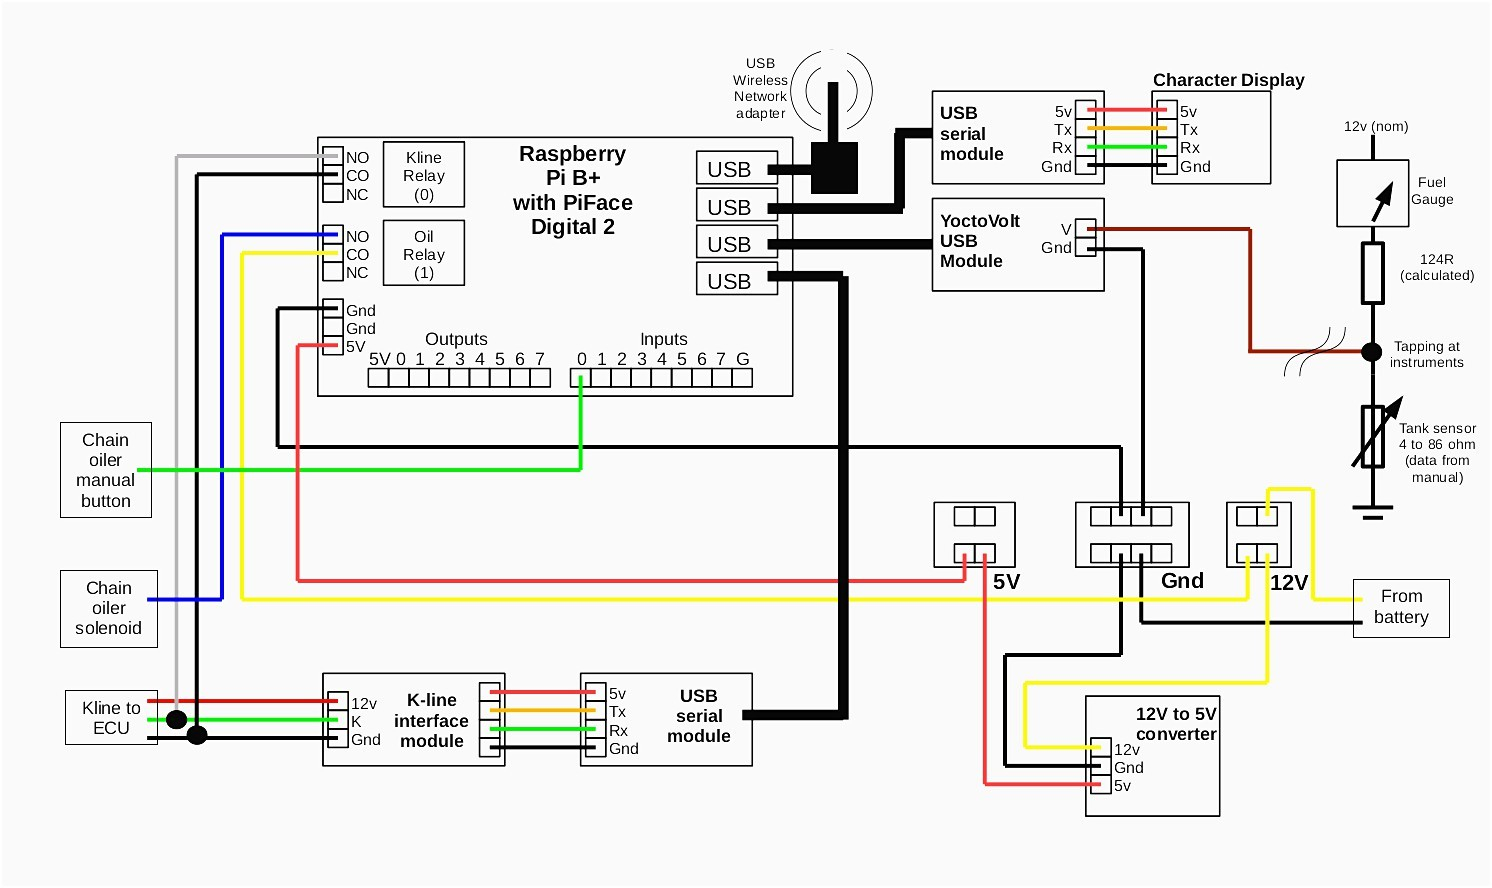 Db9 Serial To Usb Wiring Diagram | Wiring Library - Serial To Usb Wiring Diagram